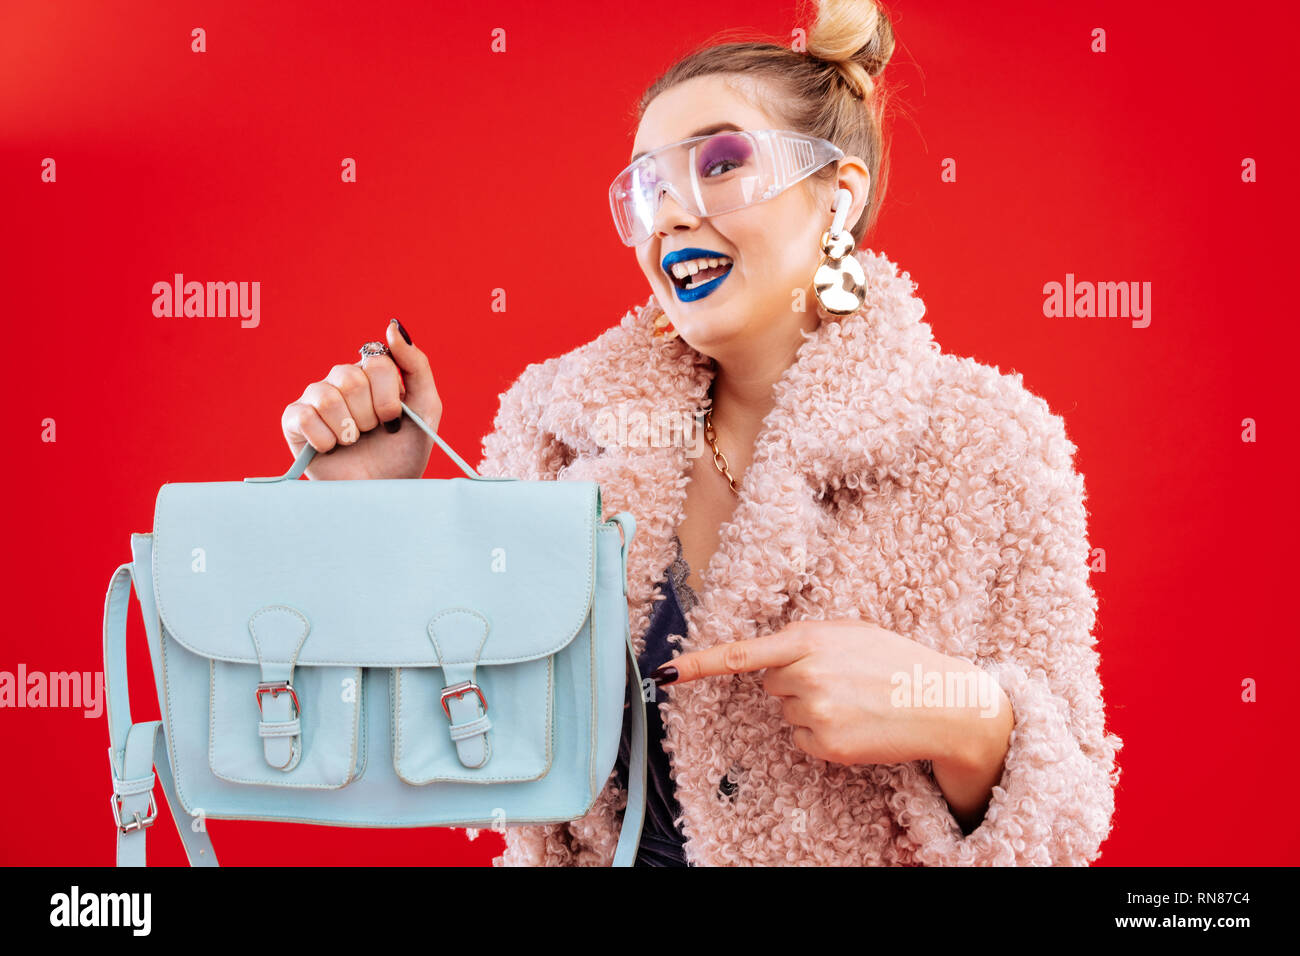 Fashion blogger feeling satisfied getting her blue leather bag - Stock Image